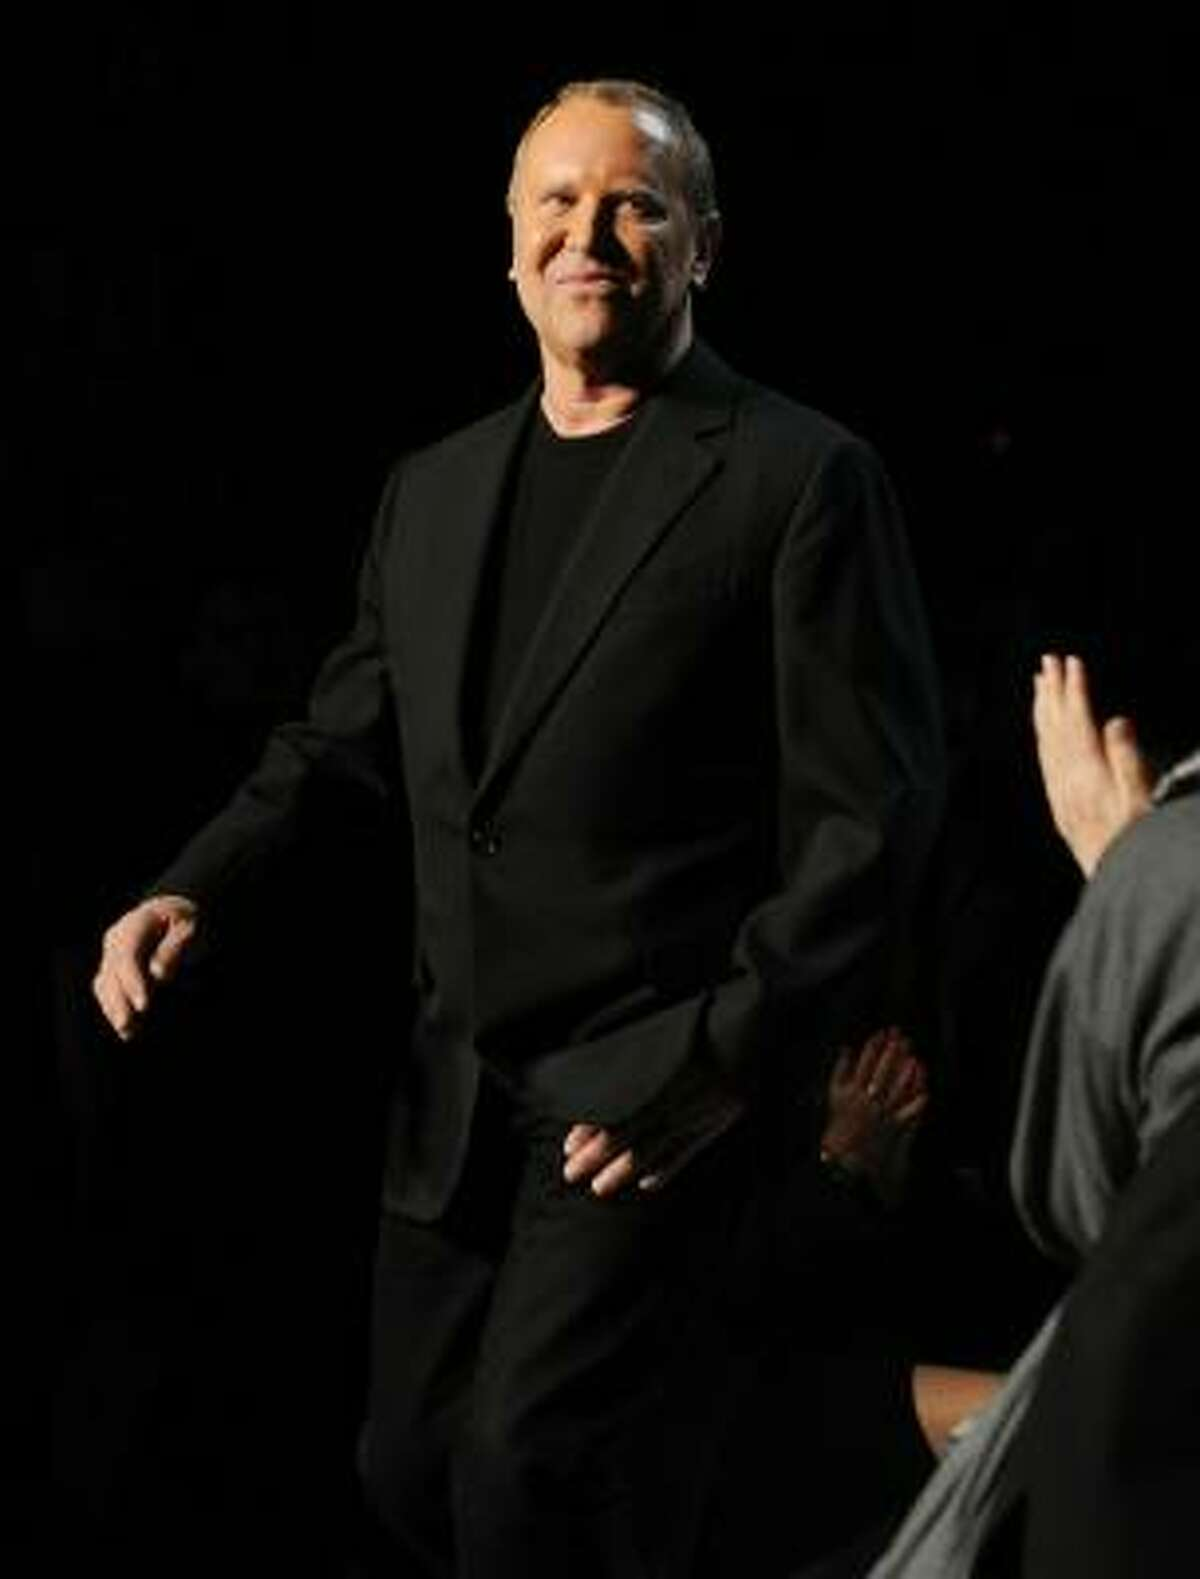 The iconic American designer and Project Runway judge said the collection celebrates his 30 years in the fashion industry.